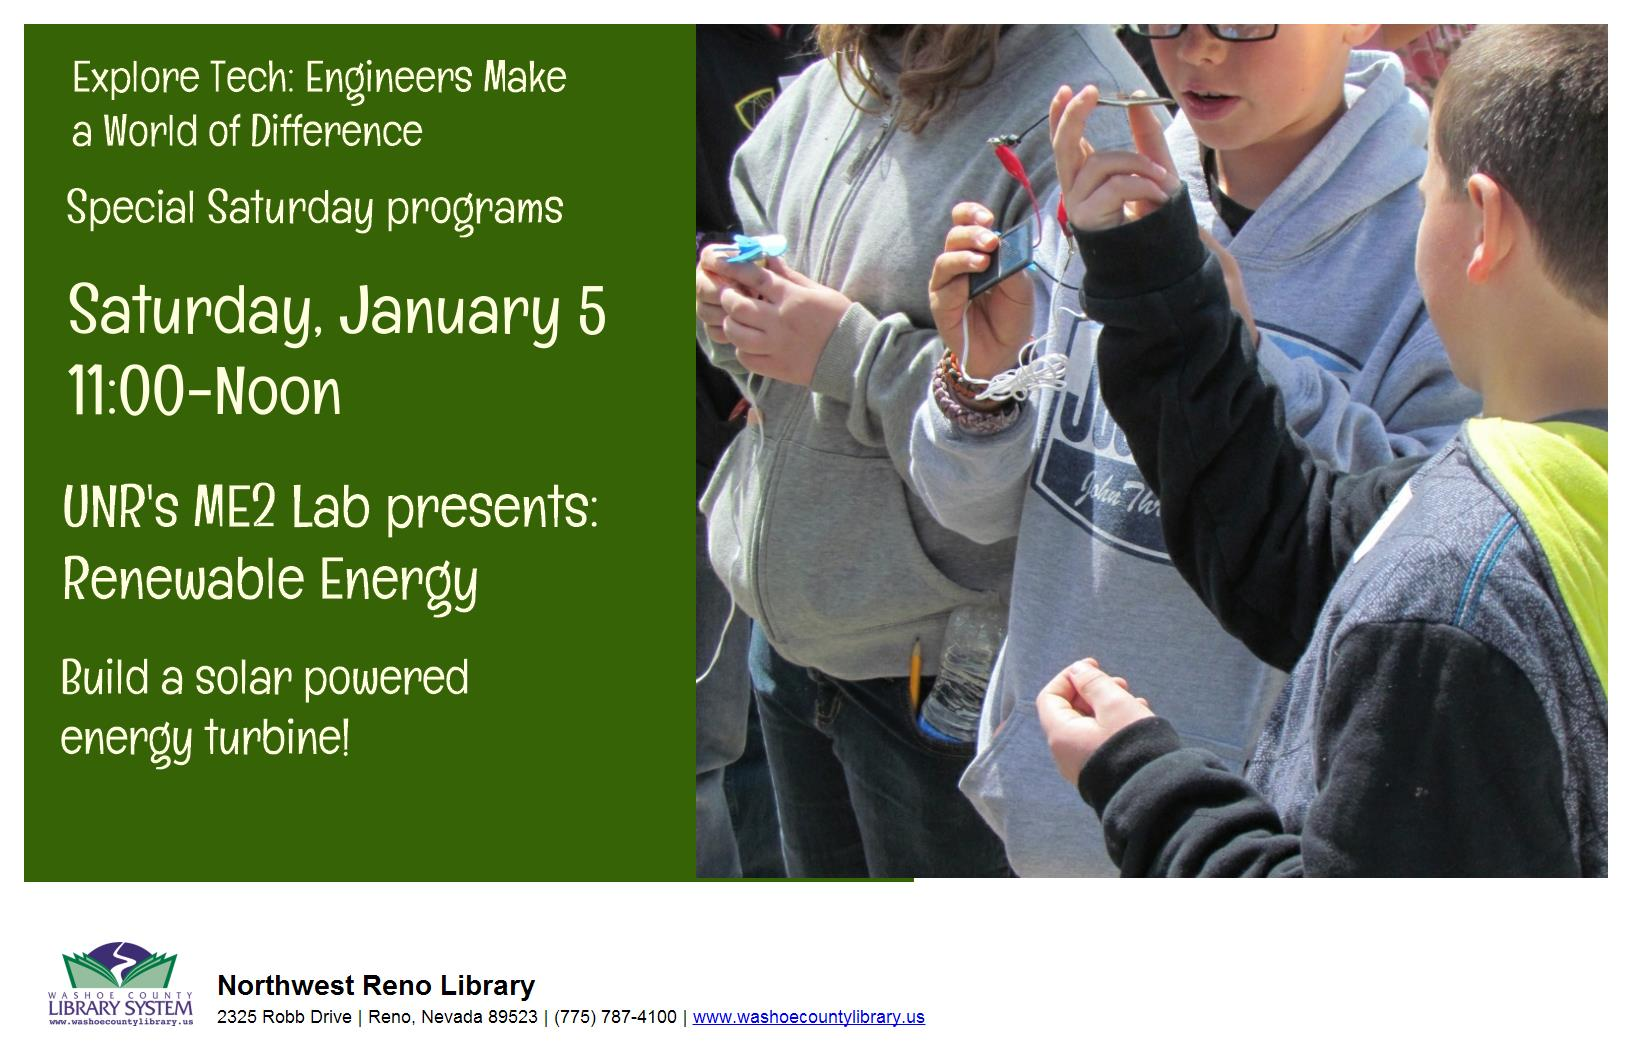 ME2 Lab Presents: Renewable Energy